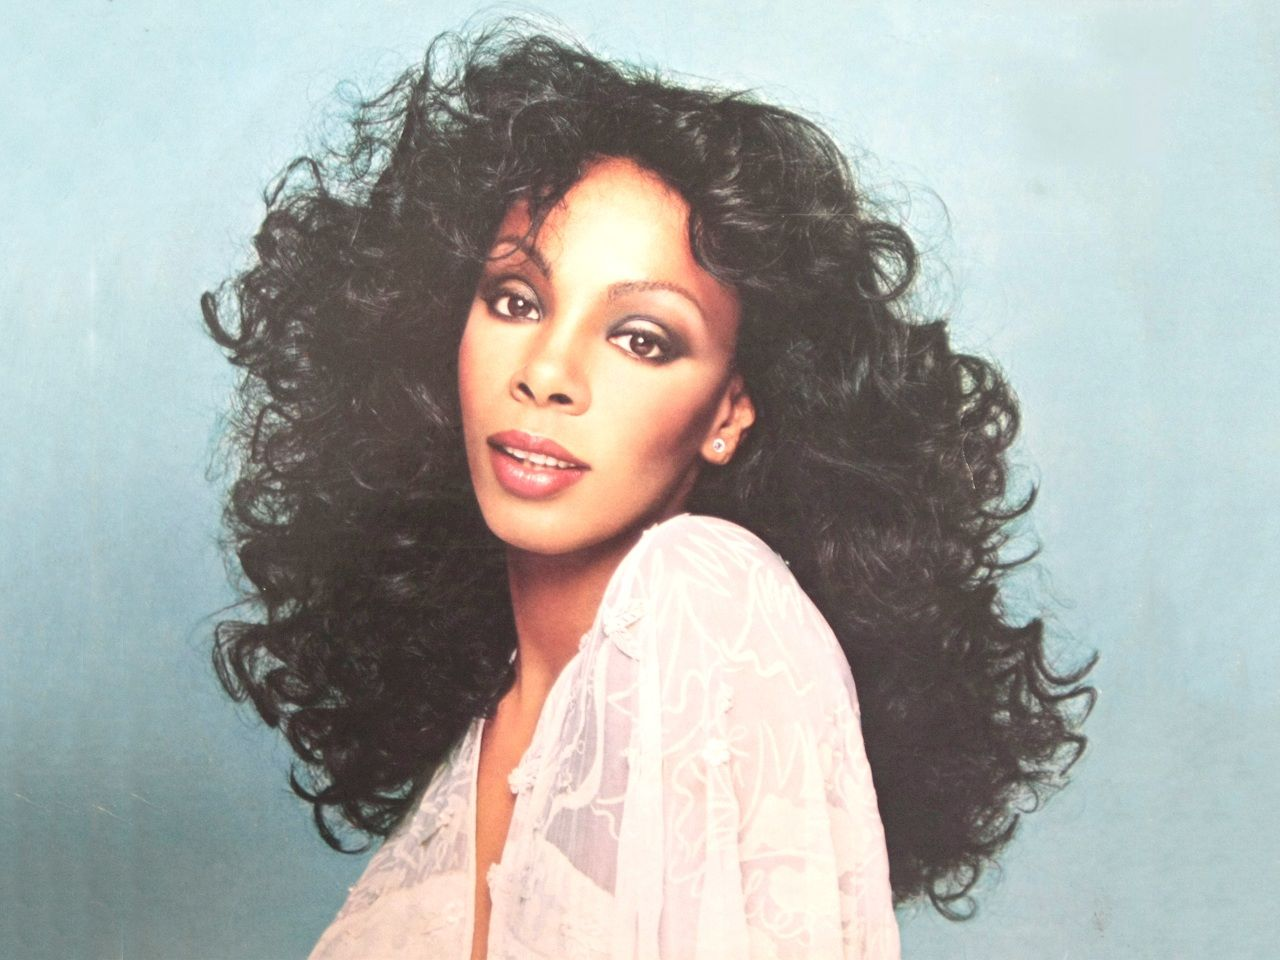 donna summer discographydonna summer – hot stuff, donna summer i feel love, donna summer – hot stuff скачать, donna summer слушать, donna summer i feel love скачать, donna summer скачать, donna summer on the radio, donna summer last dance, donna summer mp3, donna summer песни, donna summer last dance скачать, donna summer i remember yesterday, donna summer википедия, donna summer 2012, donna summer discography, donna summer лучшие песни, donna summer i feel love слушать, donna summer i will survive, donna summer youtube, donna summer the wanderer